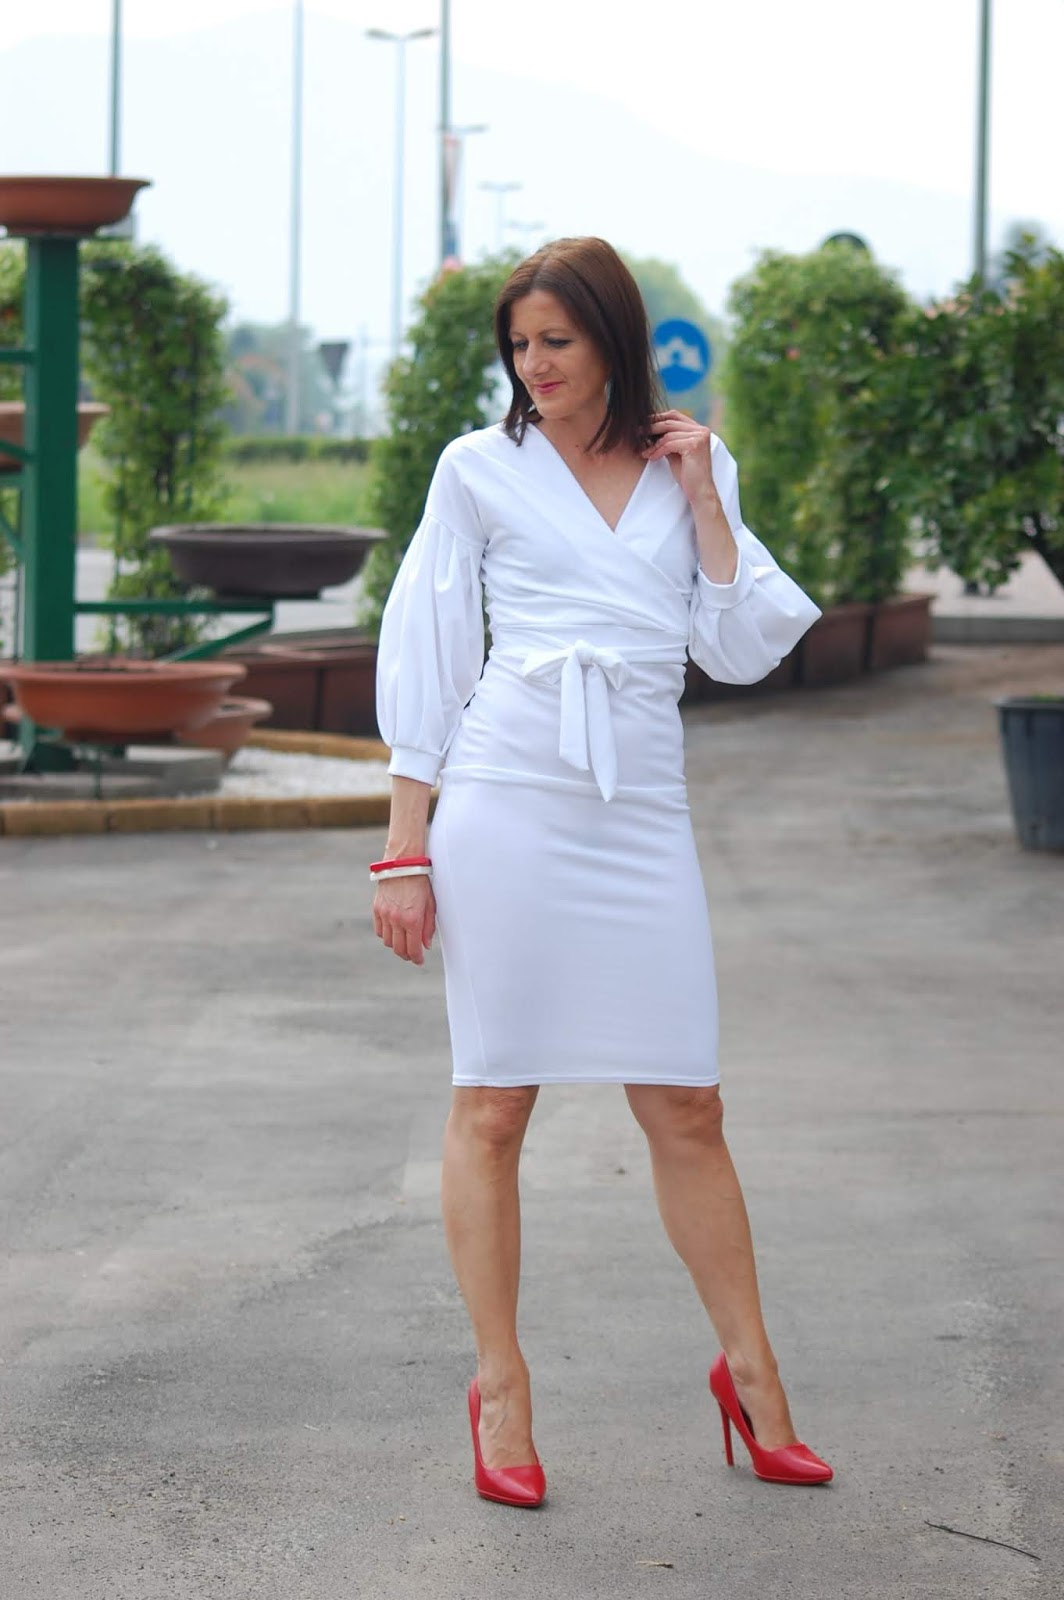 FEMME LUXE ABITO BIANCO